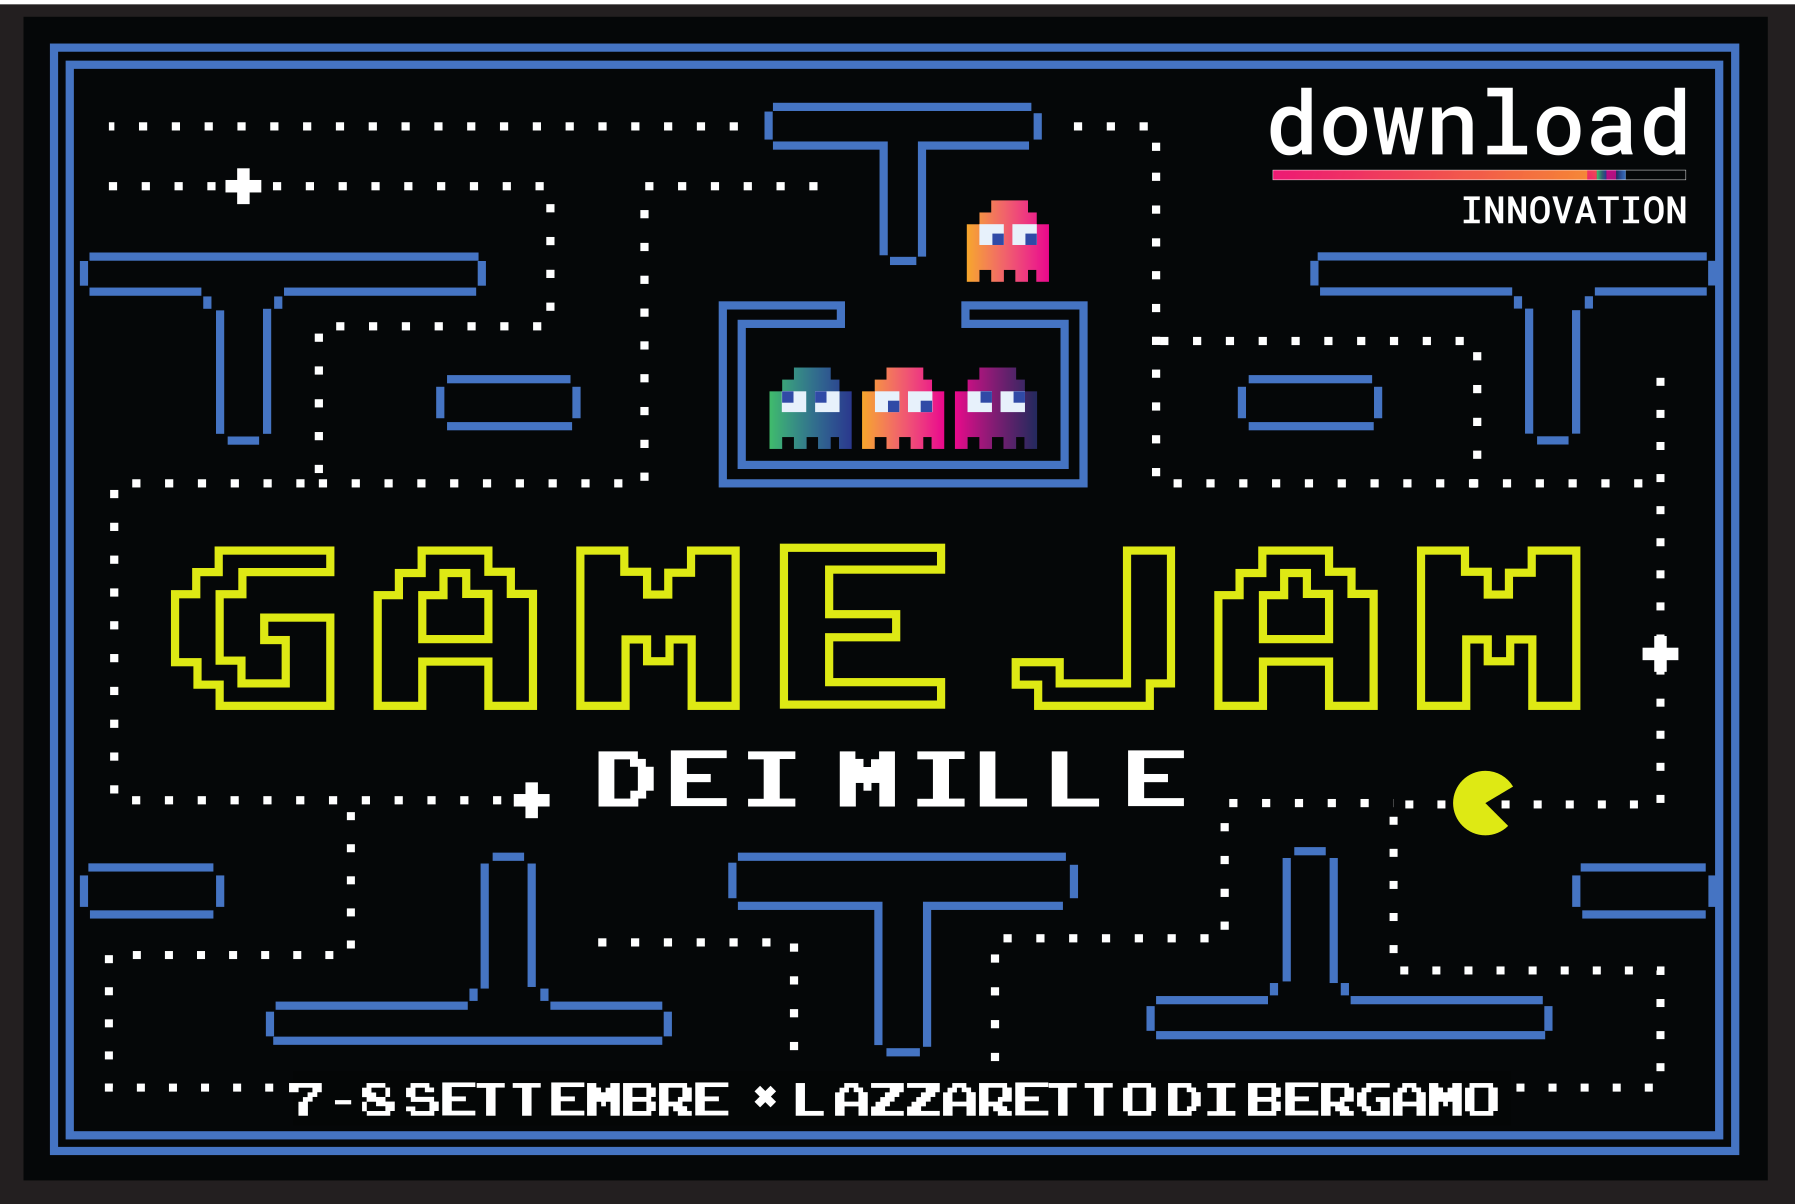 Game Jam dei mille, 7 e 8 settembre 2019, Download innovation - Bergamo